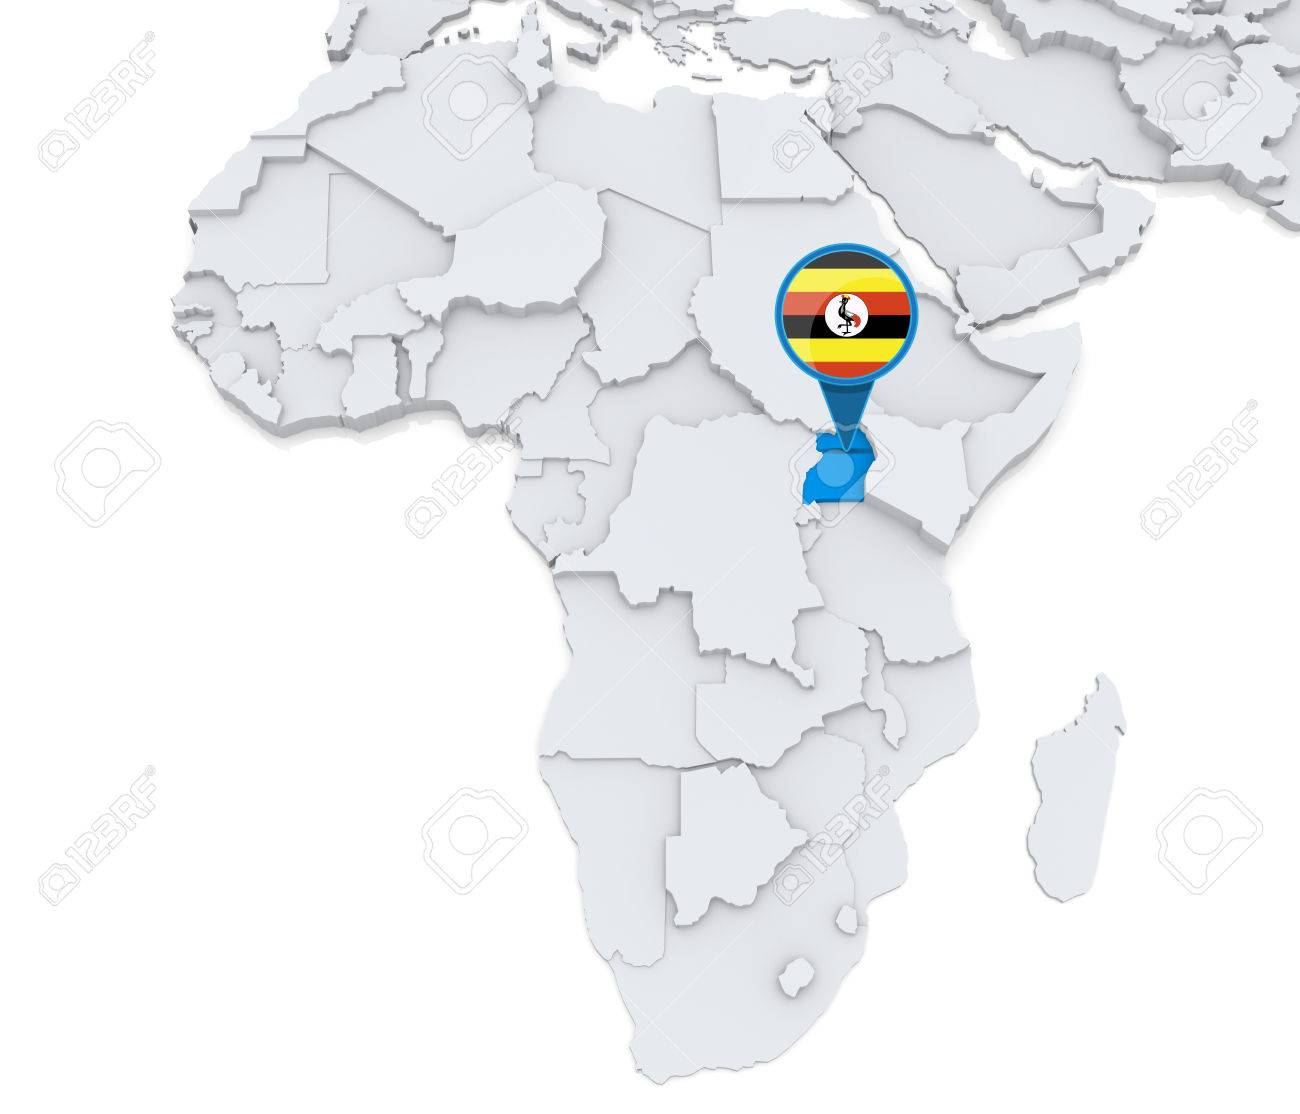 Map Of Africa Uganda Highlighted.Highlighted Uganda On Map Of Africa With National Flag